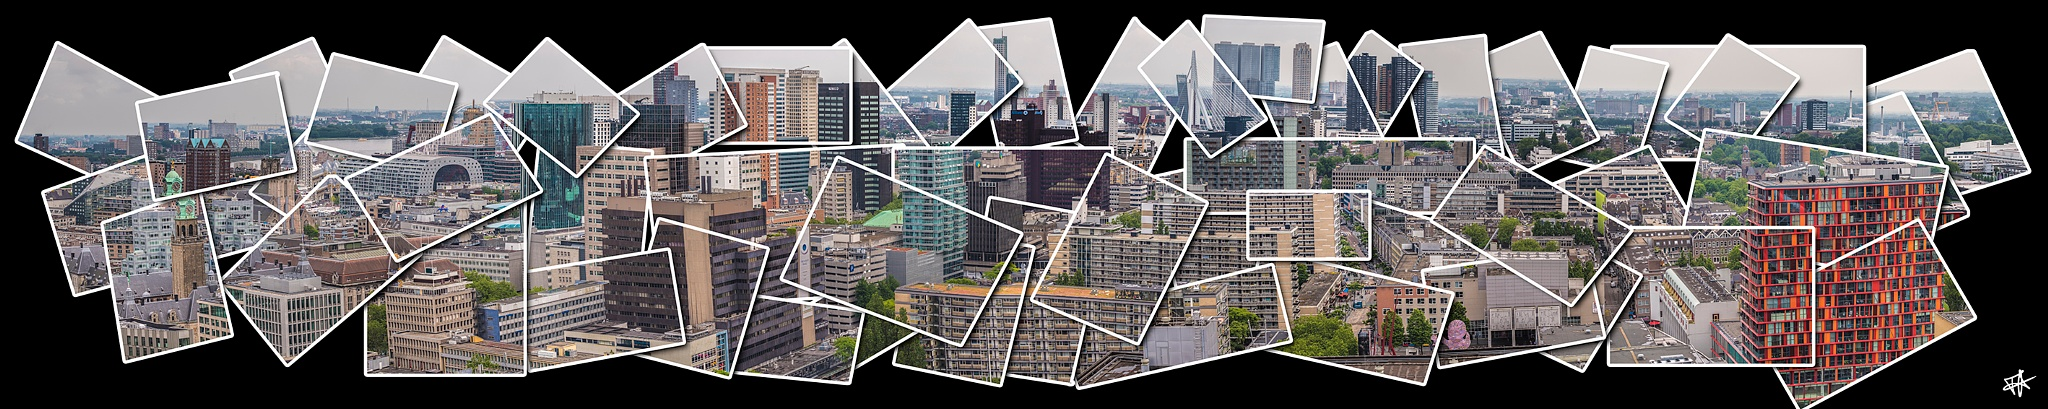 Skyline Rotterdam by fred.leeflang.7